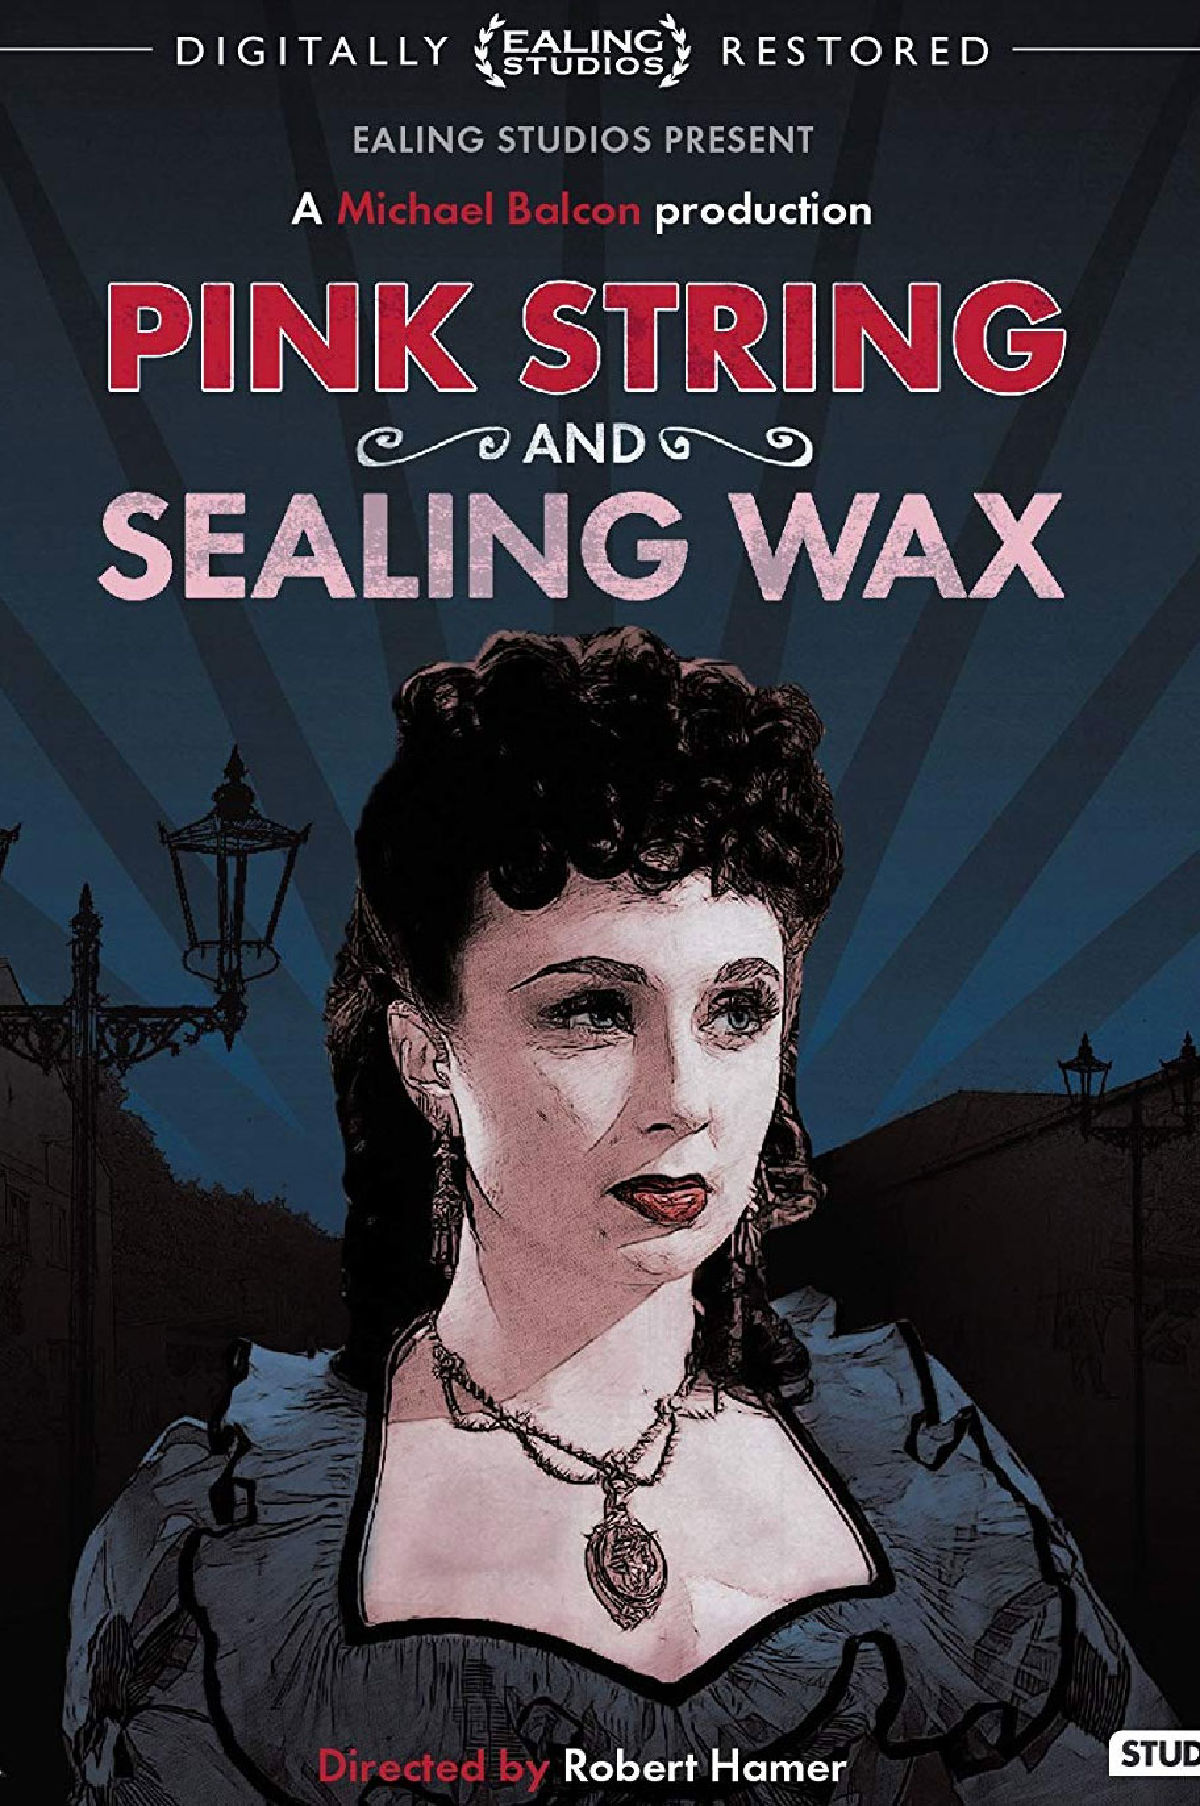 'Pink String And Sealing Wax' movie poster